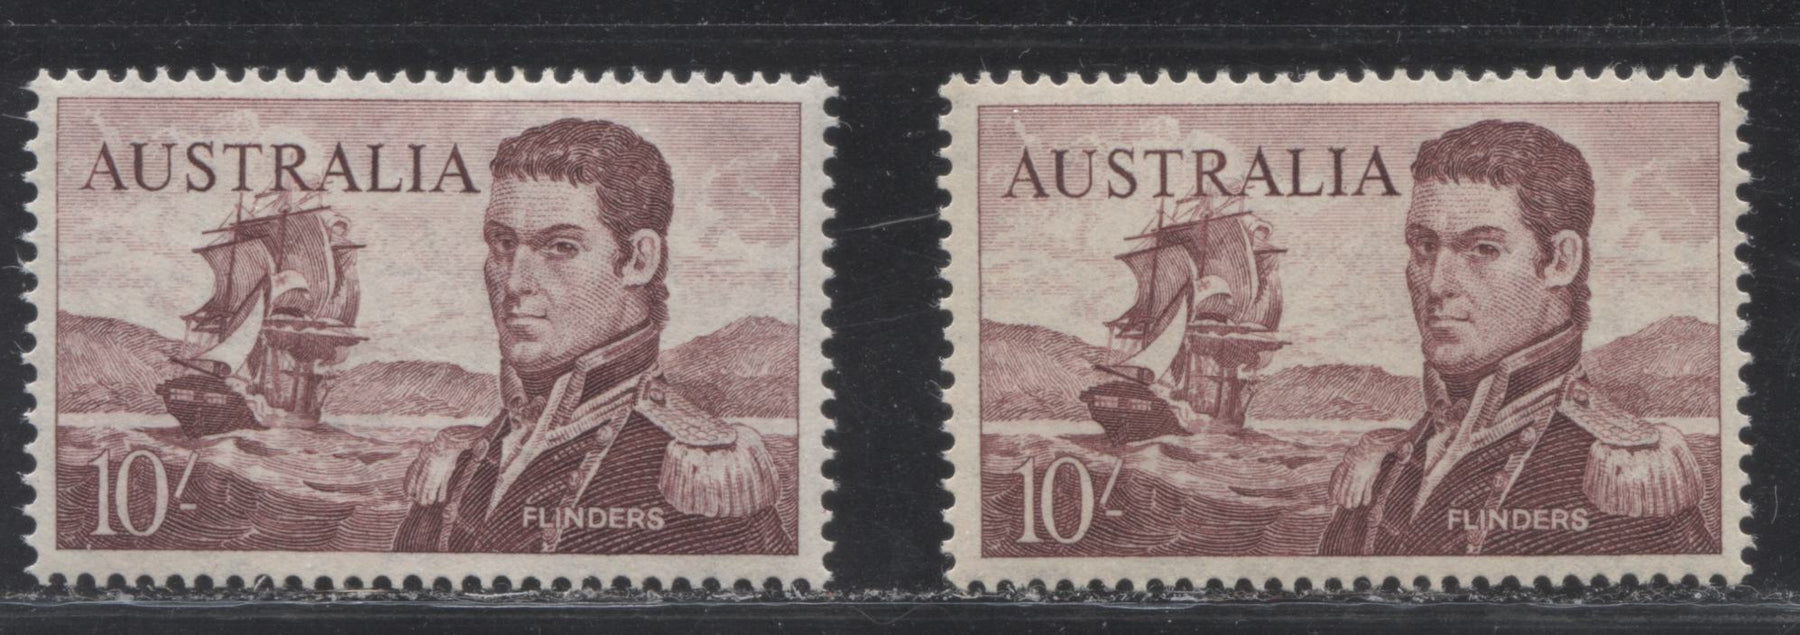 Australia #377 (SG#358-358a) 10/- Maroon Matthew Flinders, 1963-1966 Definitive Issue, VFLH and VFNH Examples of the Cream and White Papers